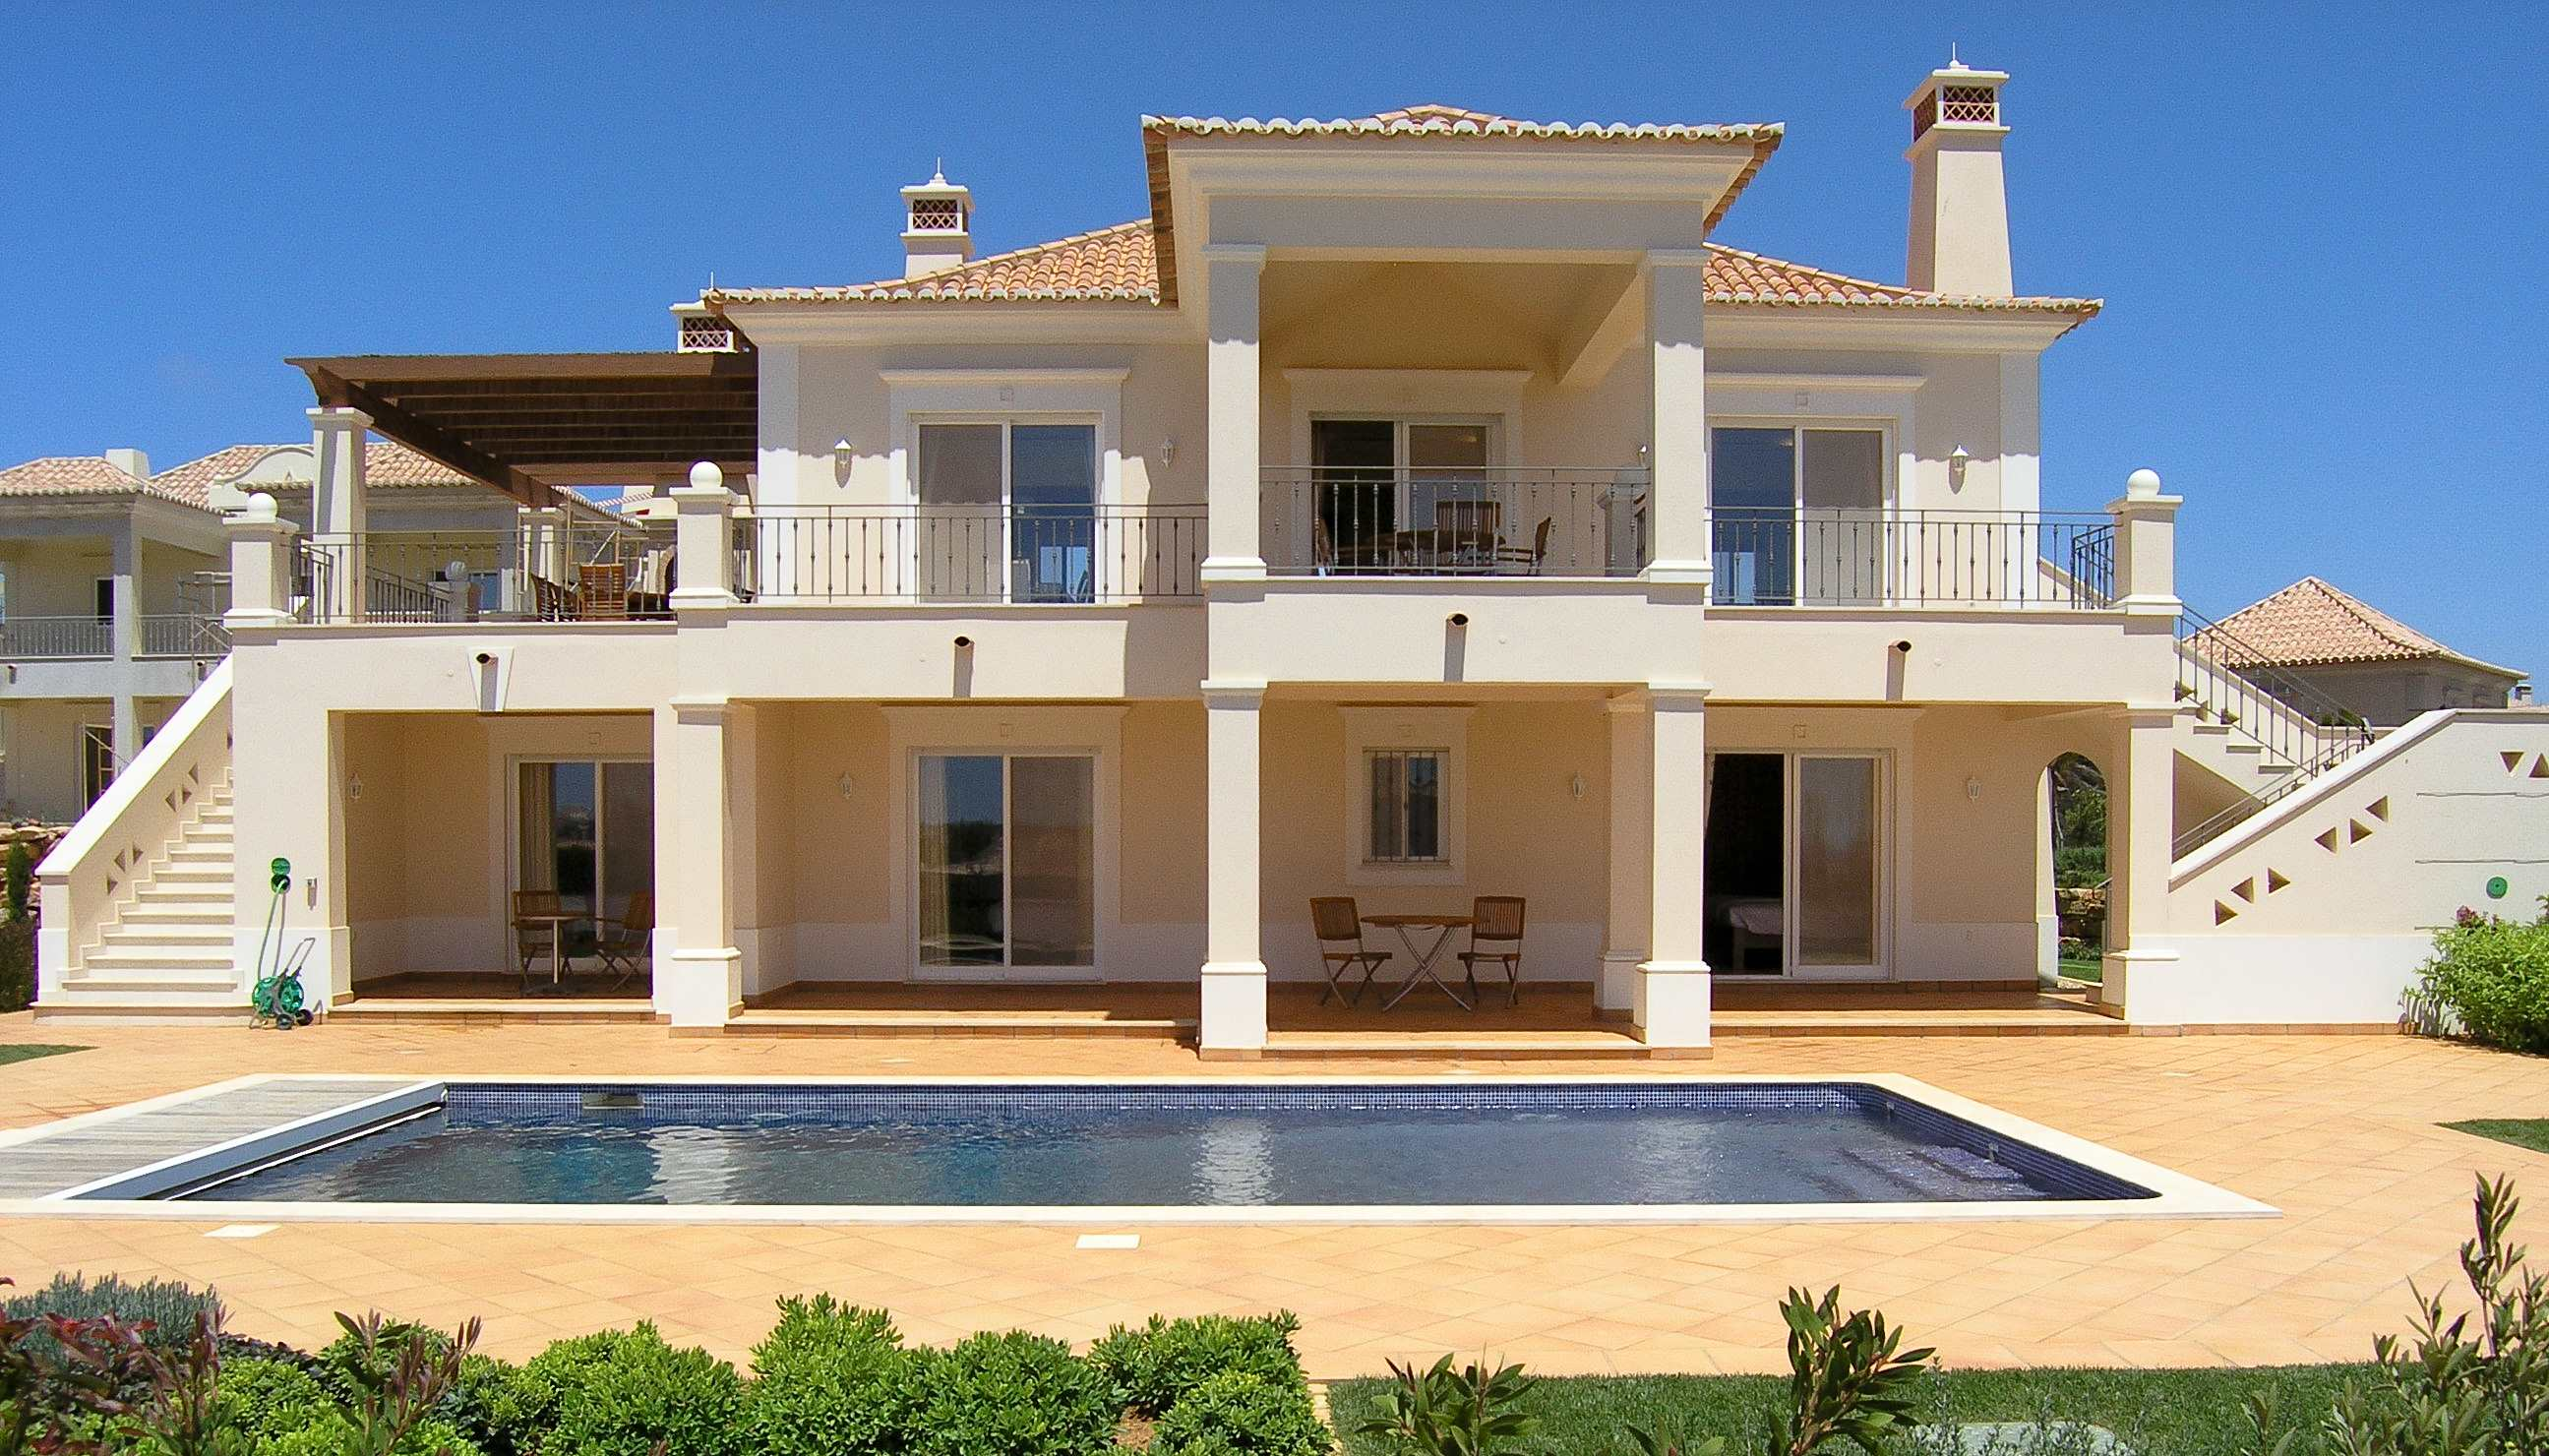 Martinhal Luxury Villa No.27, Four Bedroom Villa, 4 bedroom villa in Martinhal Sagres, Algarve Photo #2